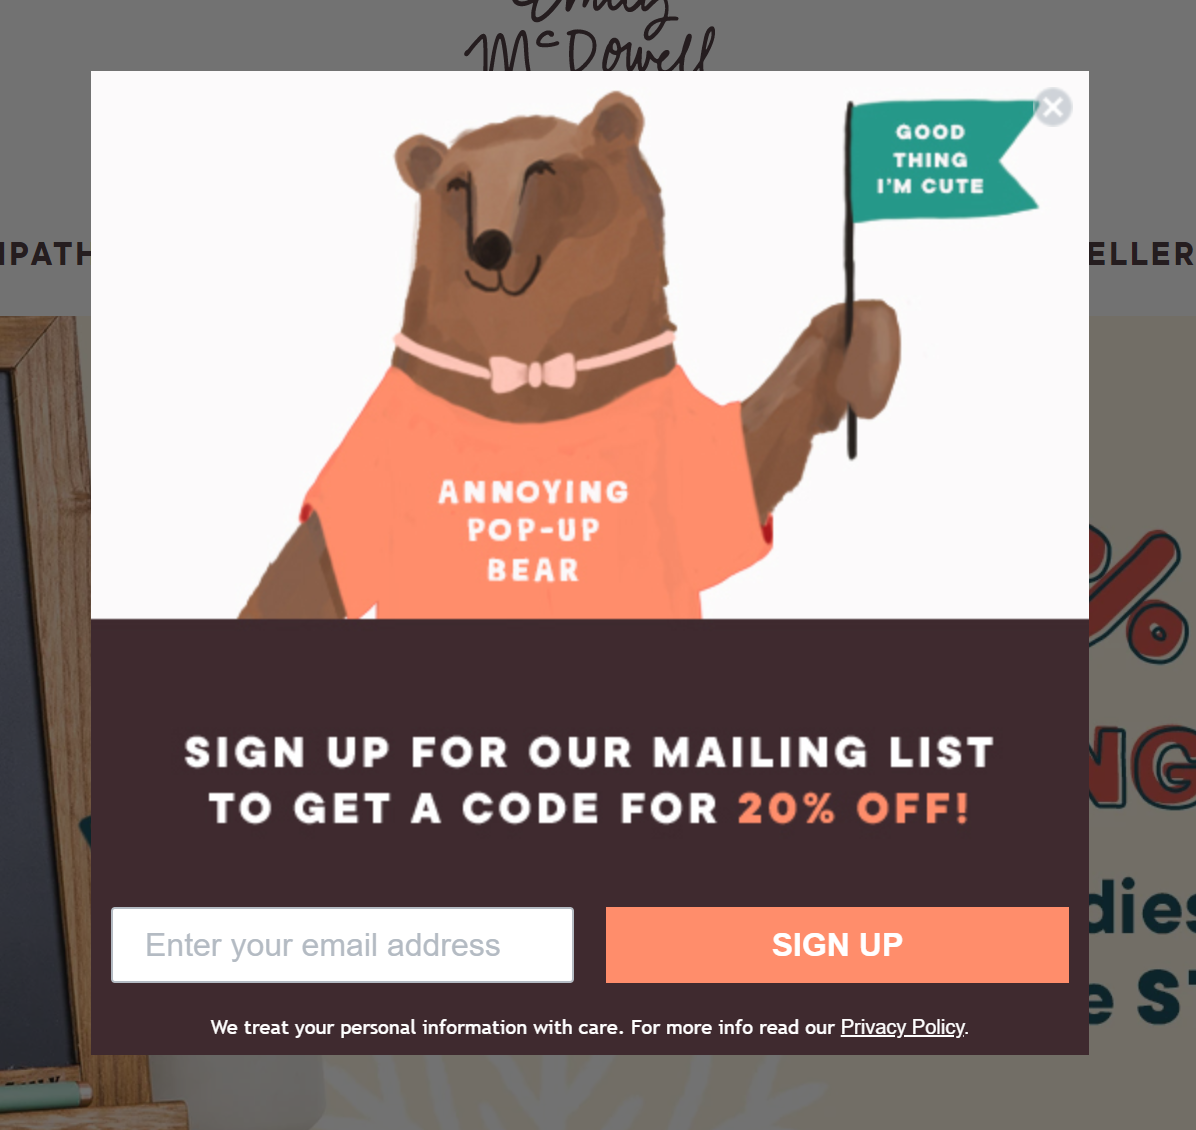 Email pop-up design